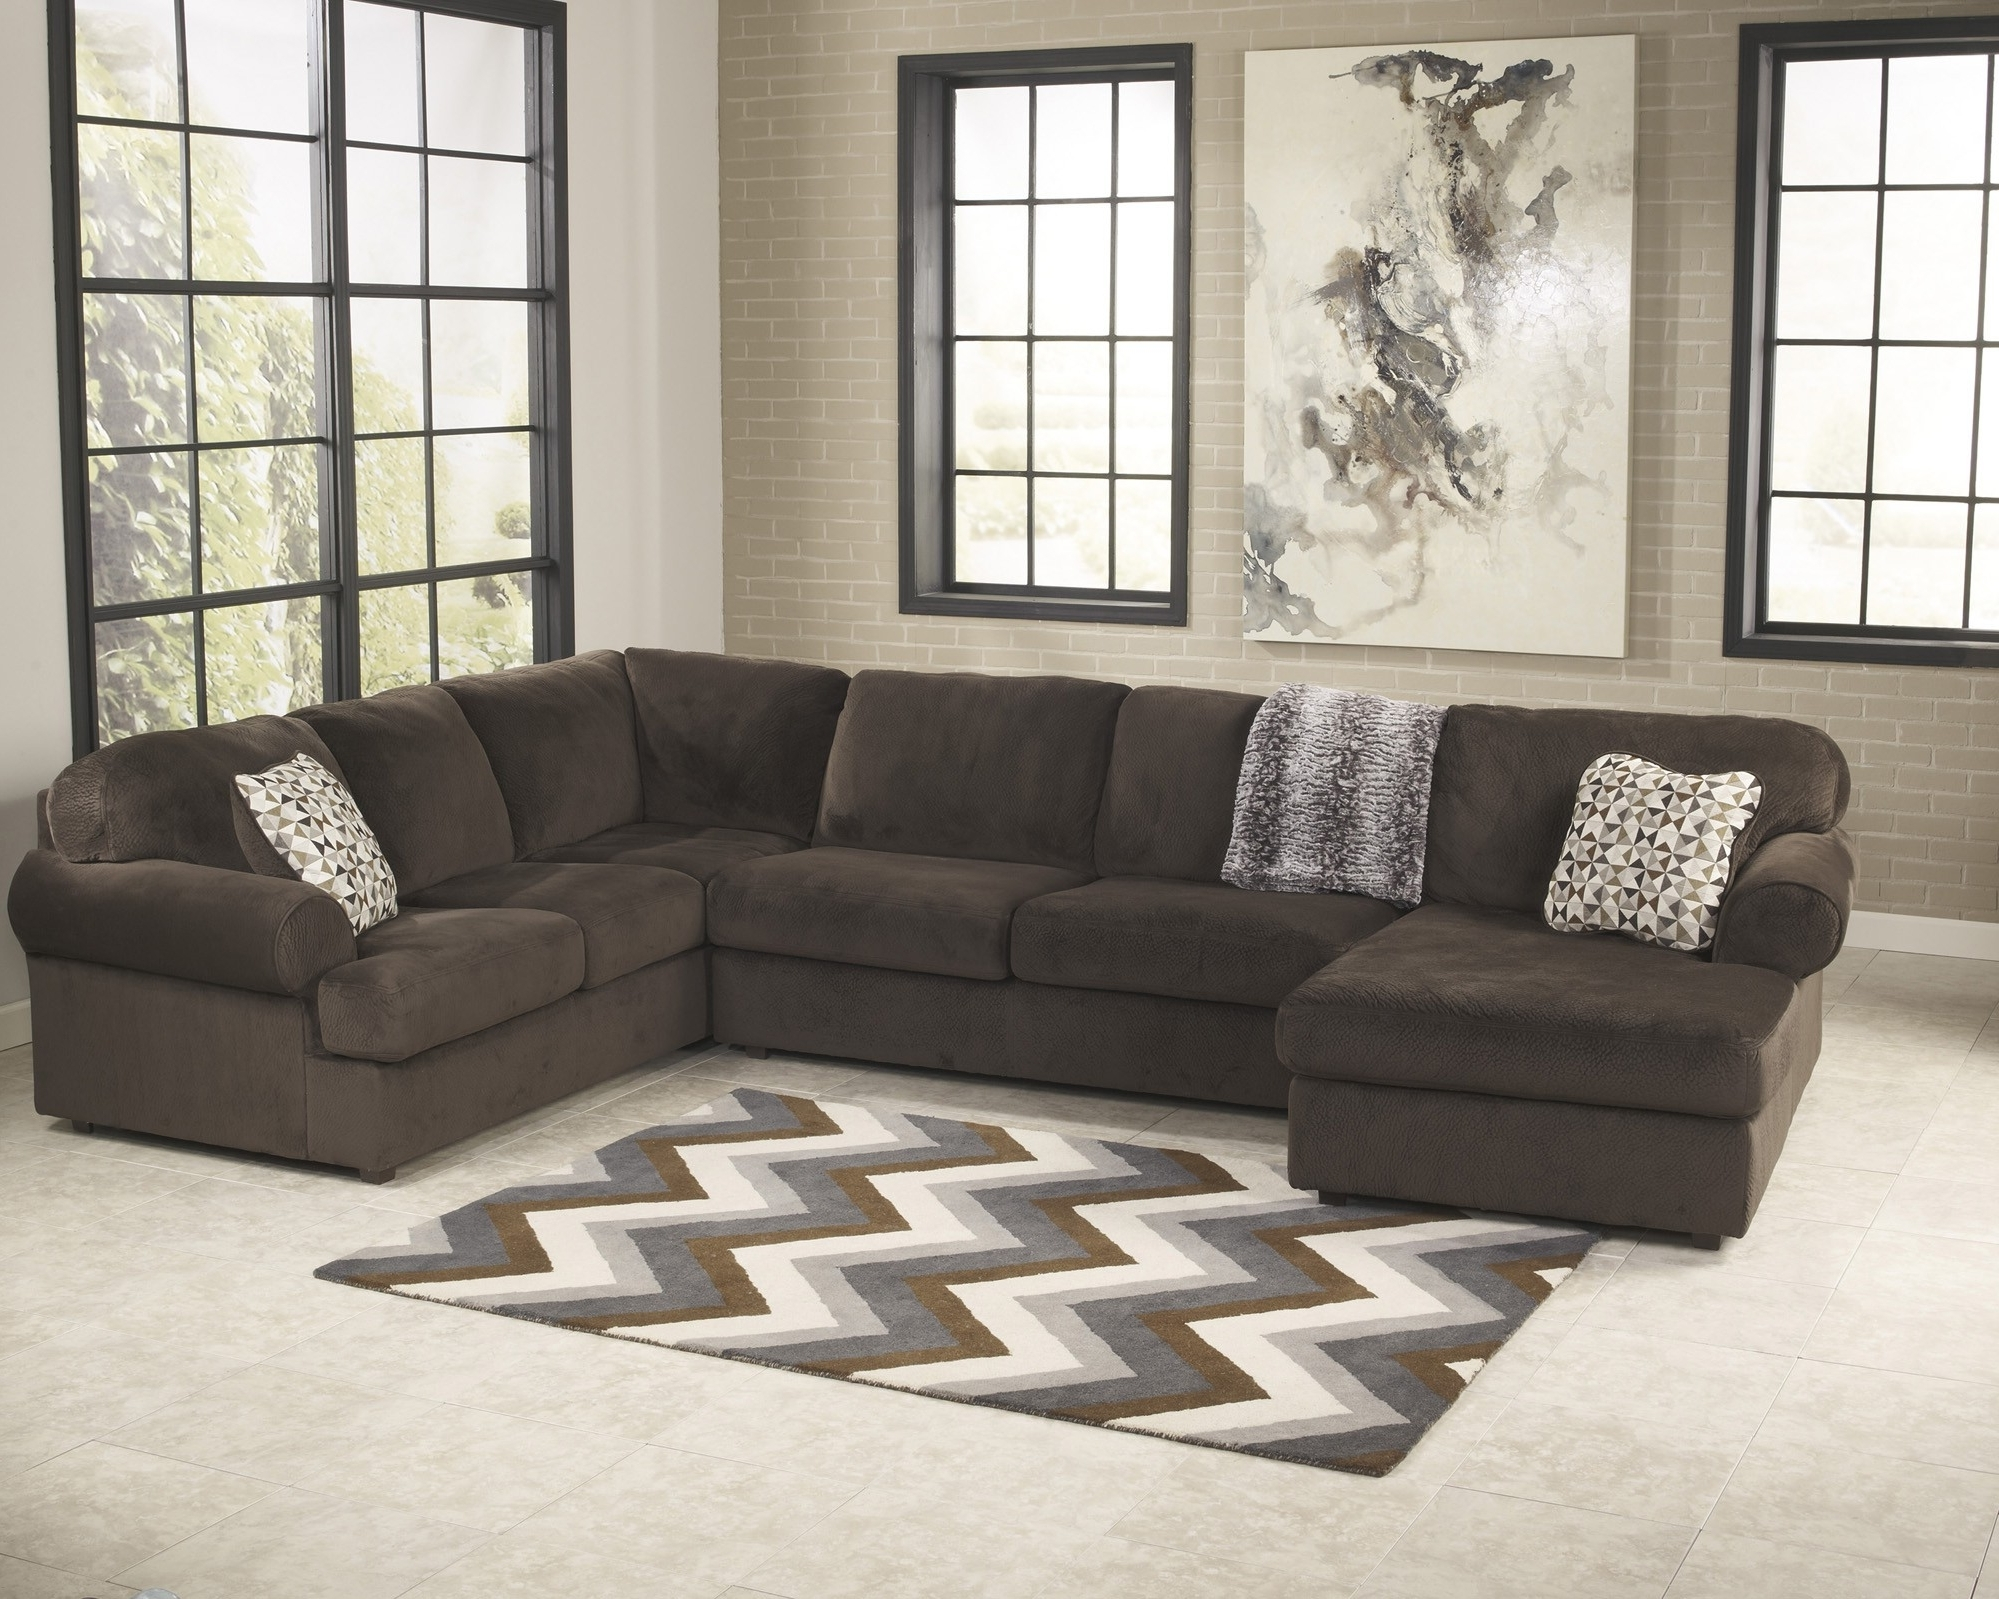 Jessa Place Chocolate 3 Piece Sectional Sofa For $ (View 7 of 15)